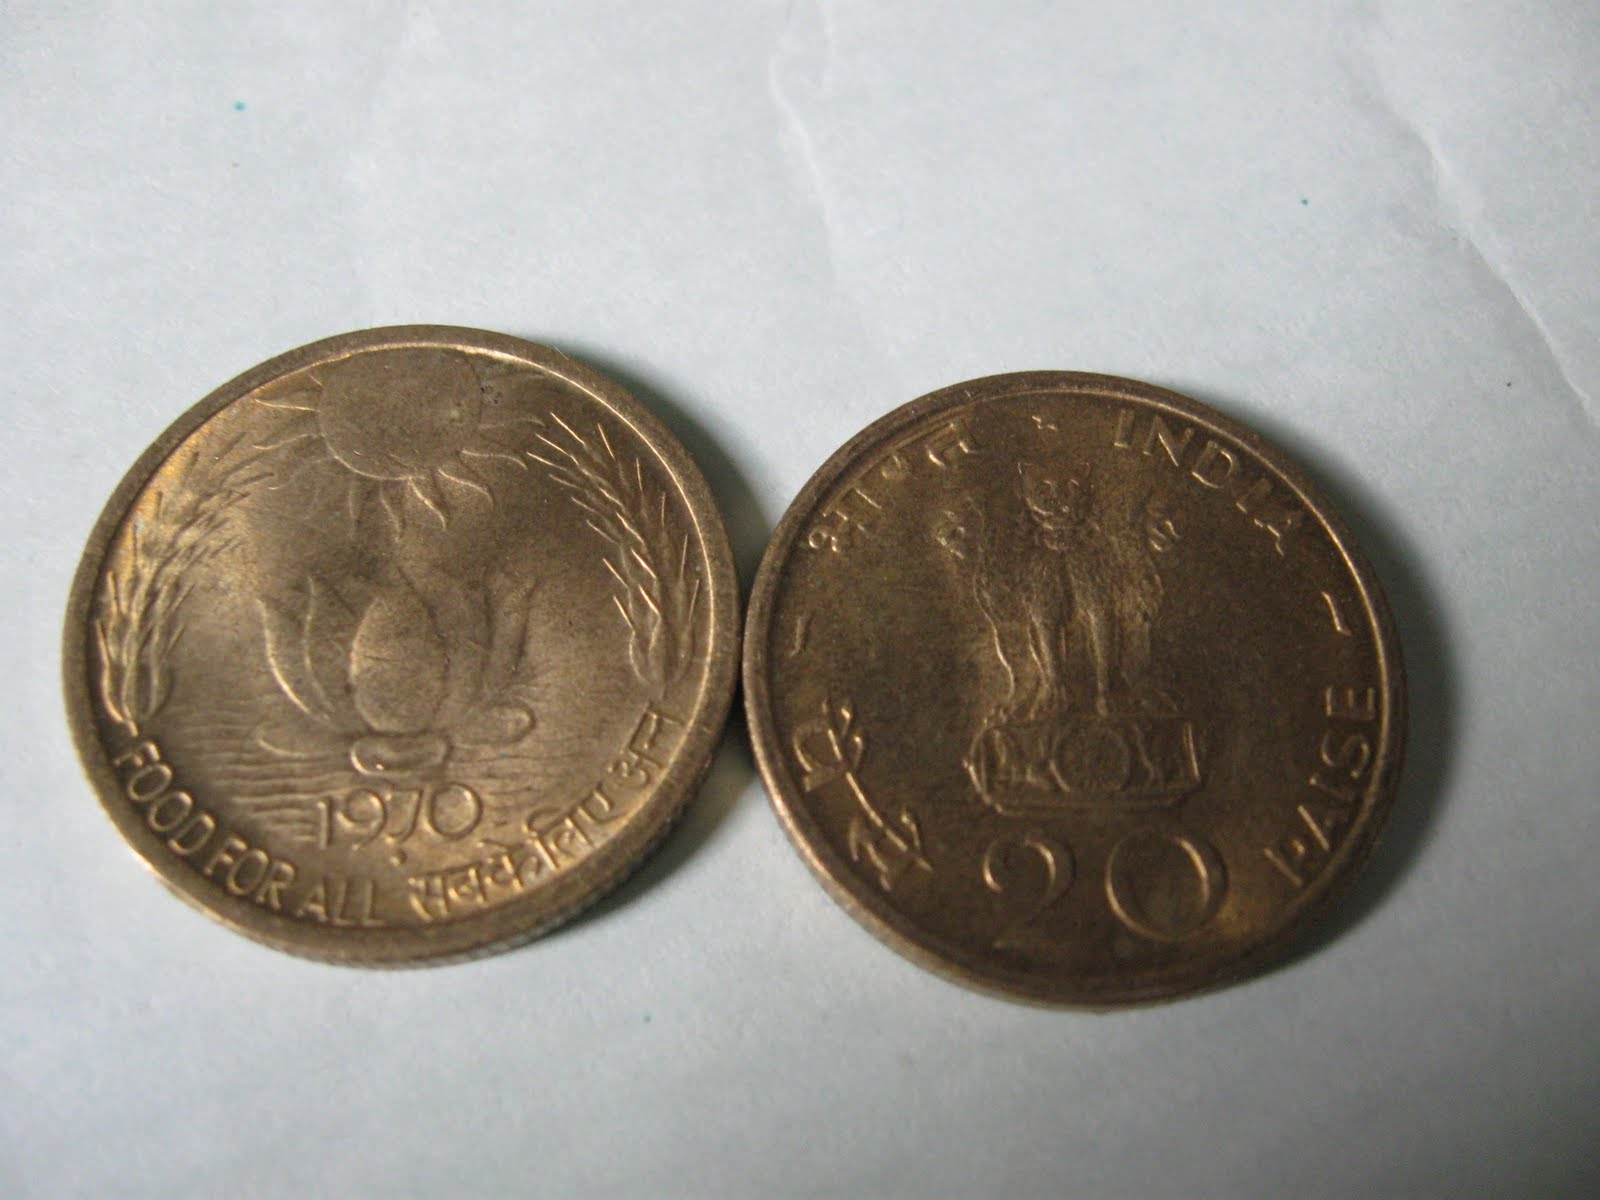 MY Rare old coins collection -for sale: FOR DECENT PRICE: 20 Paise ...